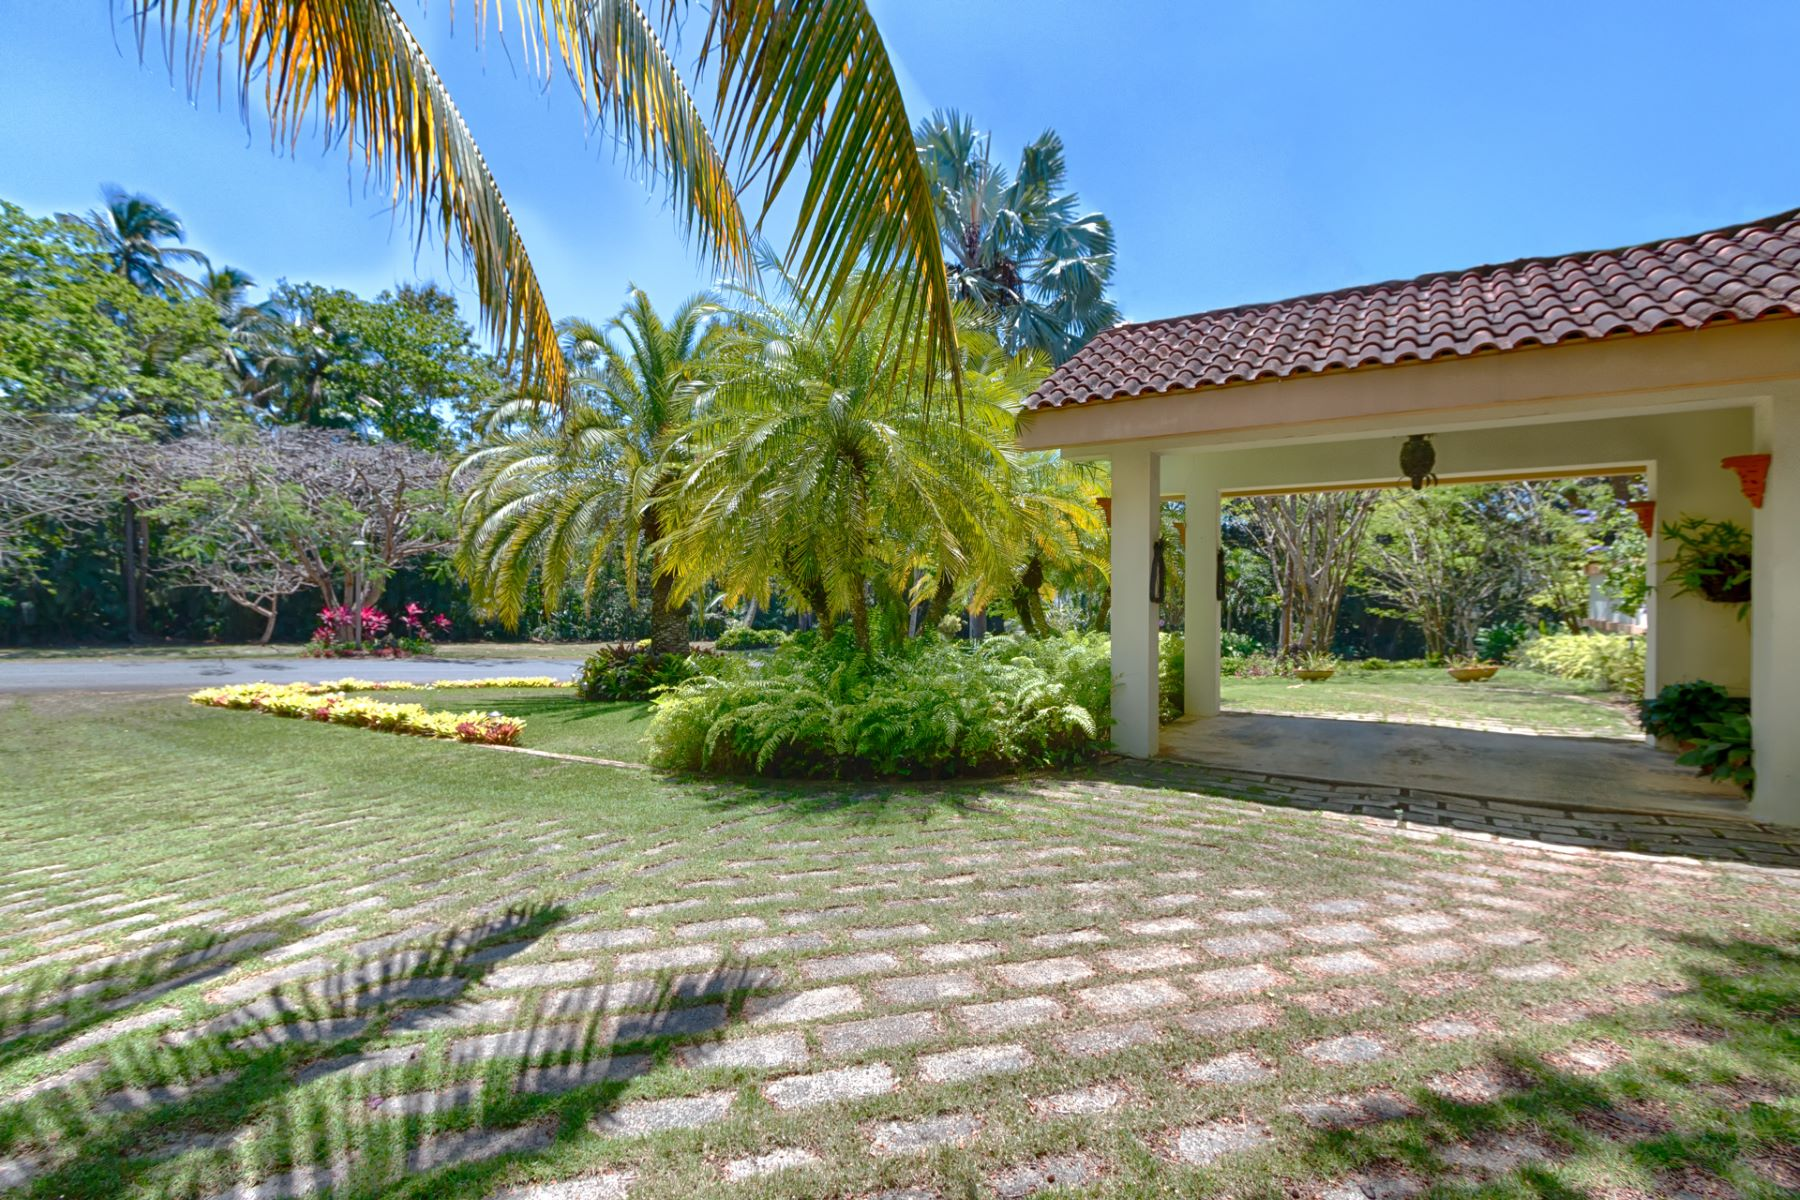 Additional photo for property listing at 15 Dorado Beach Estates  Dorado Beach, 波多黎各 00646 波多黎各